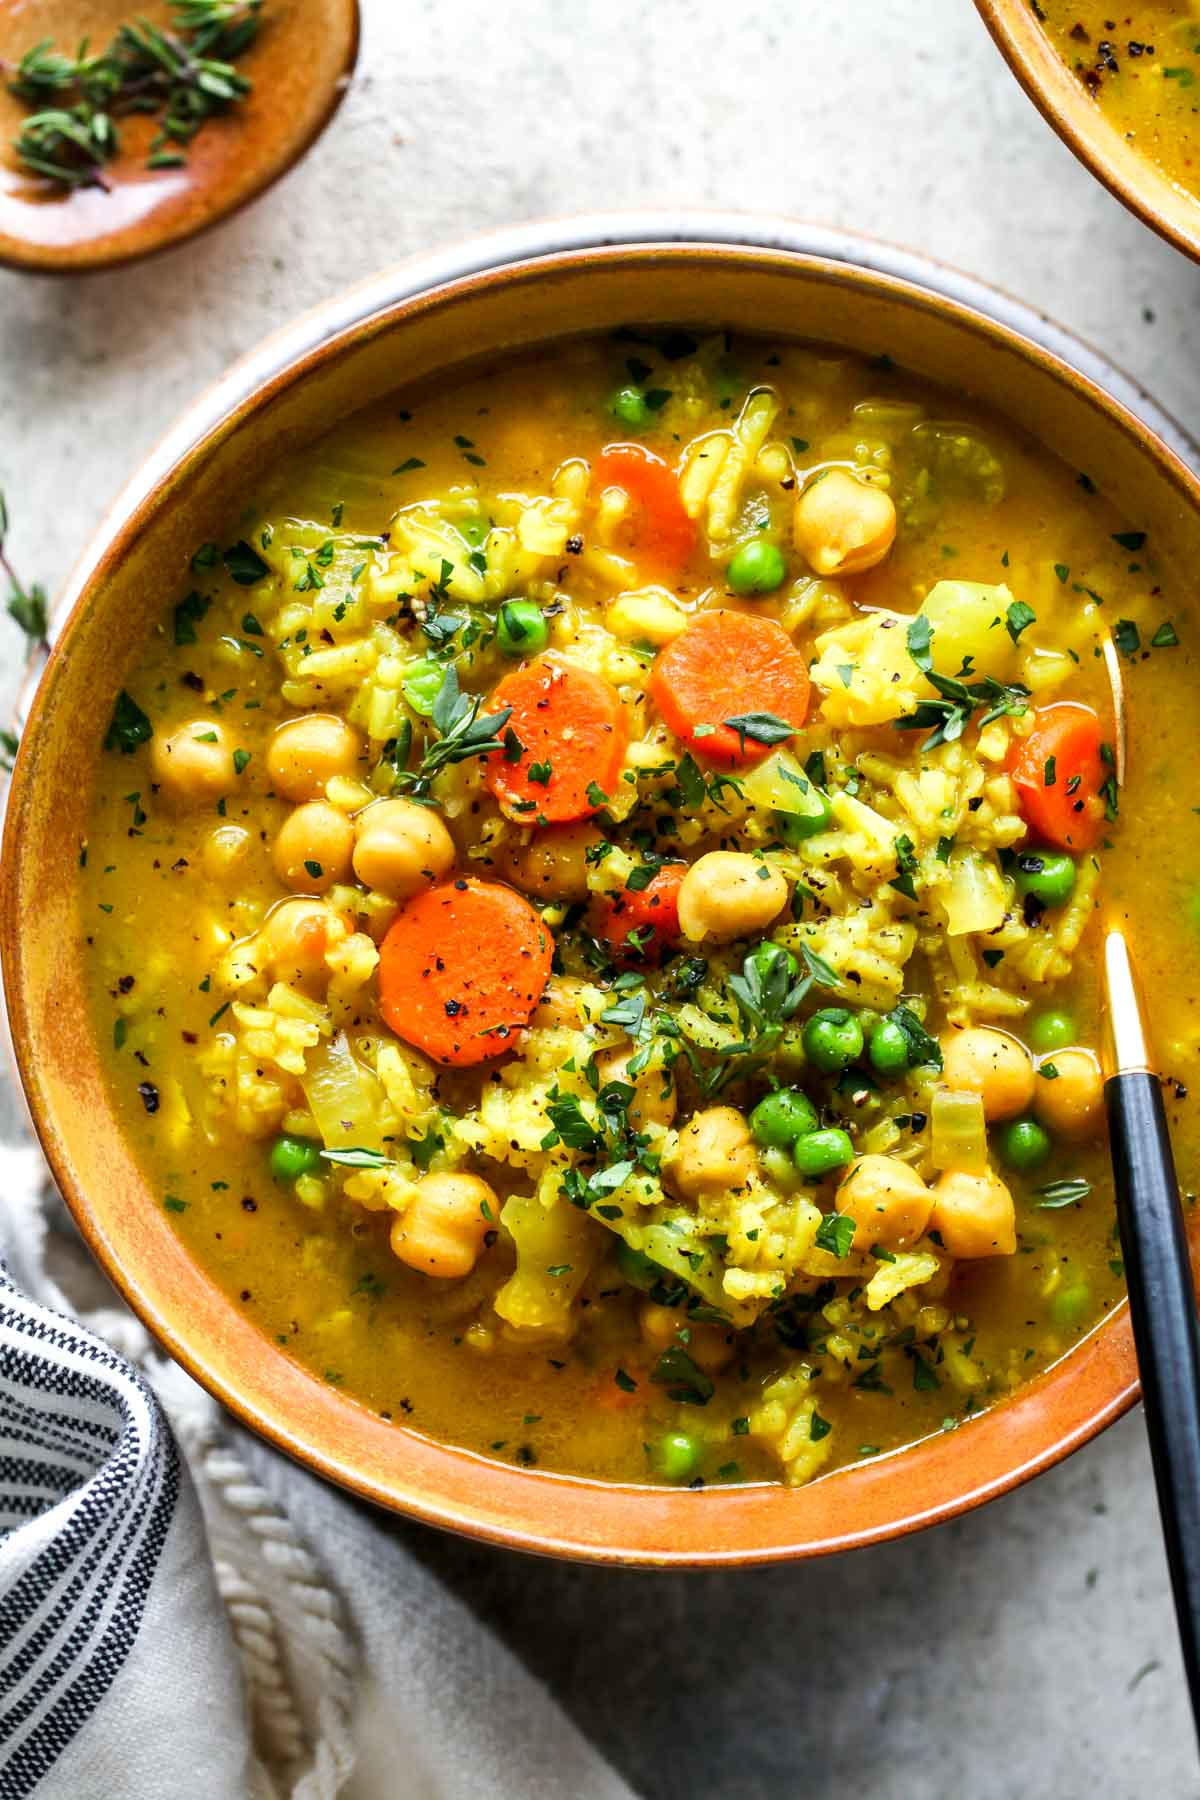 Chickpea and rice soup in a gold bowl topped with fresh thyme